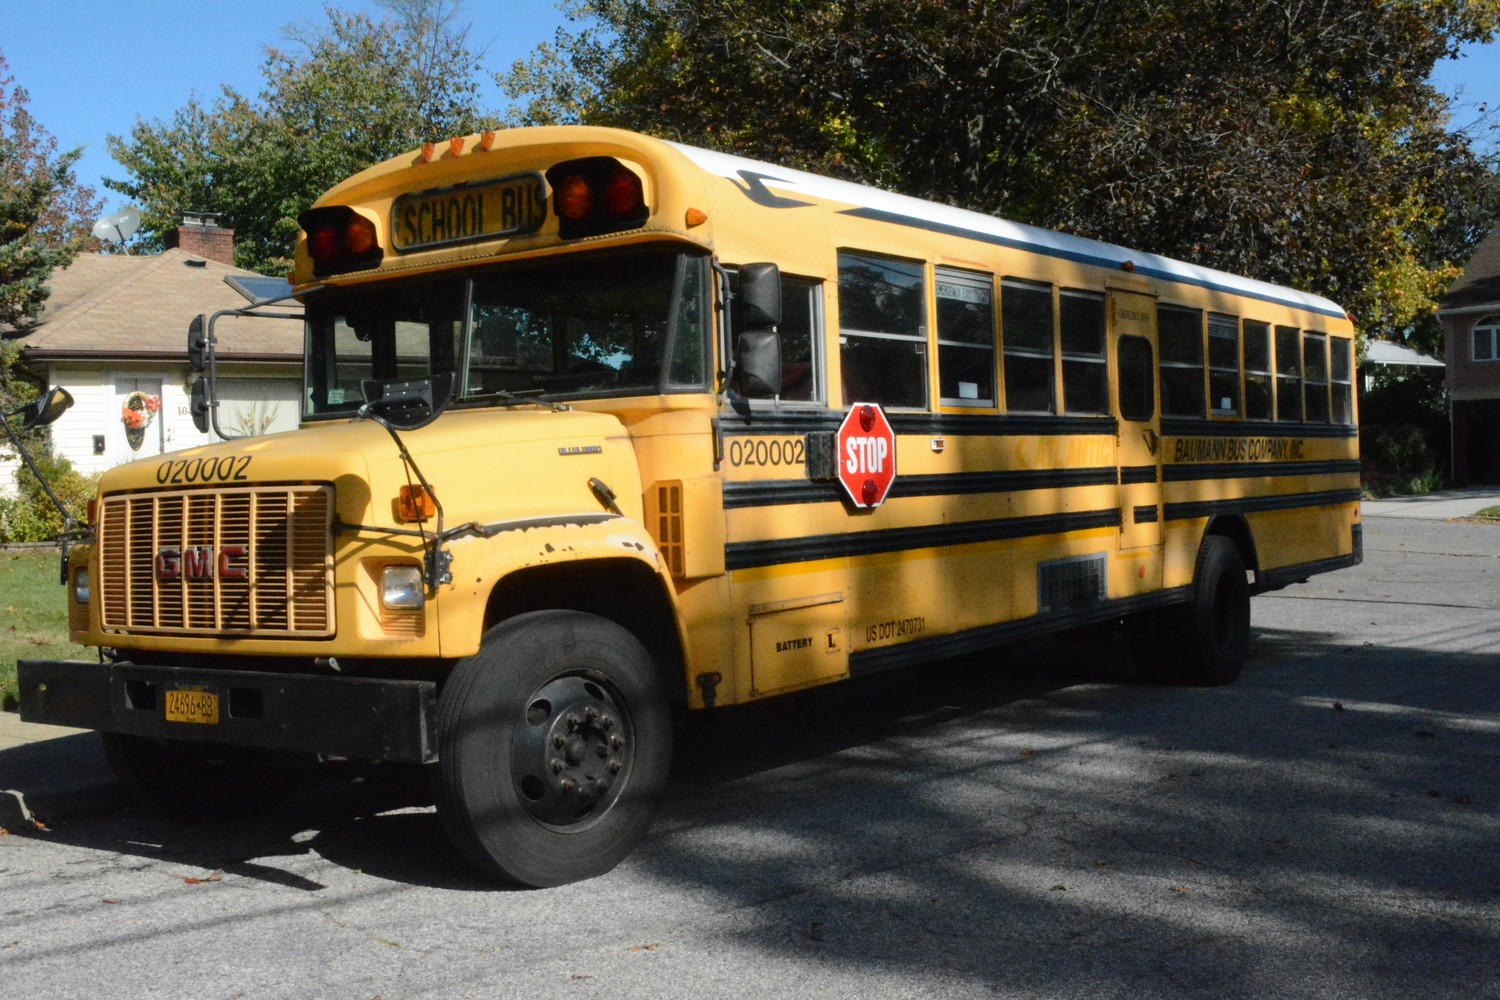 Although the Baumann School bus strike isn't over, limited service has been restored to affected school districts.